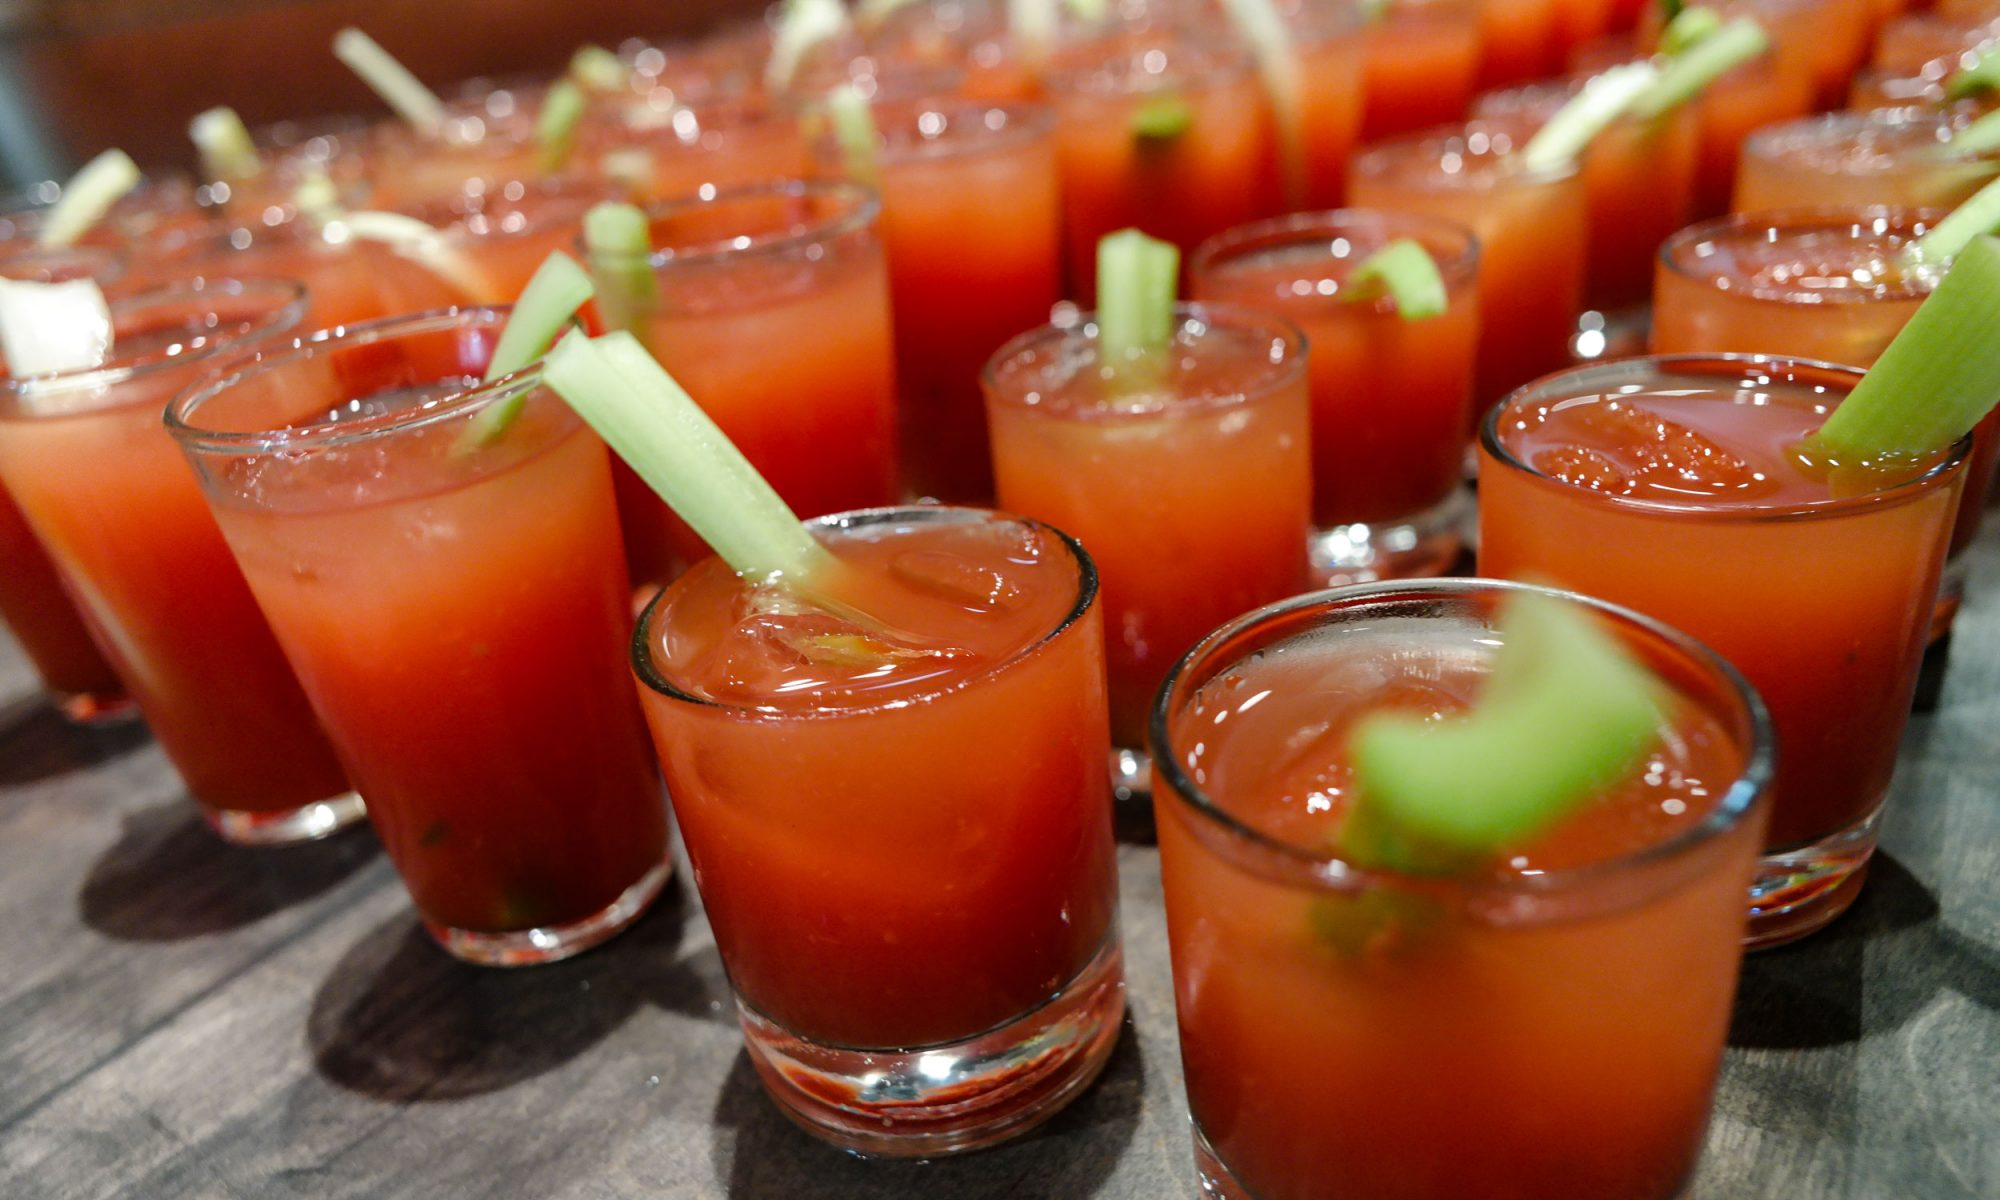 EC: This Bloody Mary Facial Will Make Your Face Feel Better